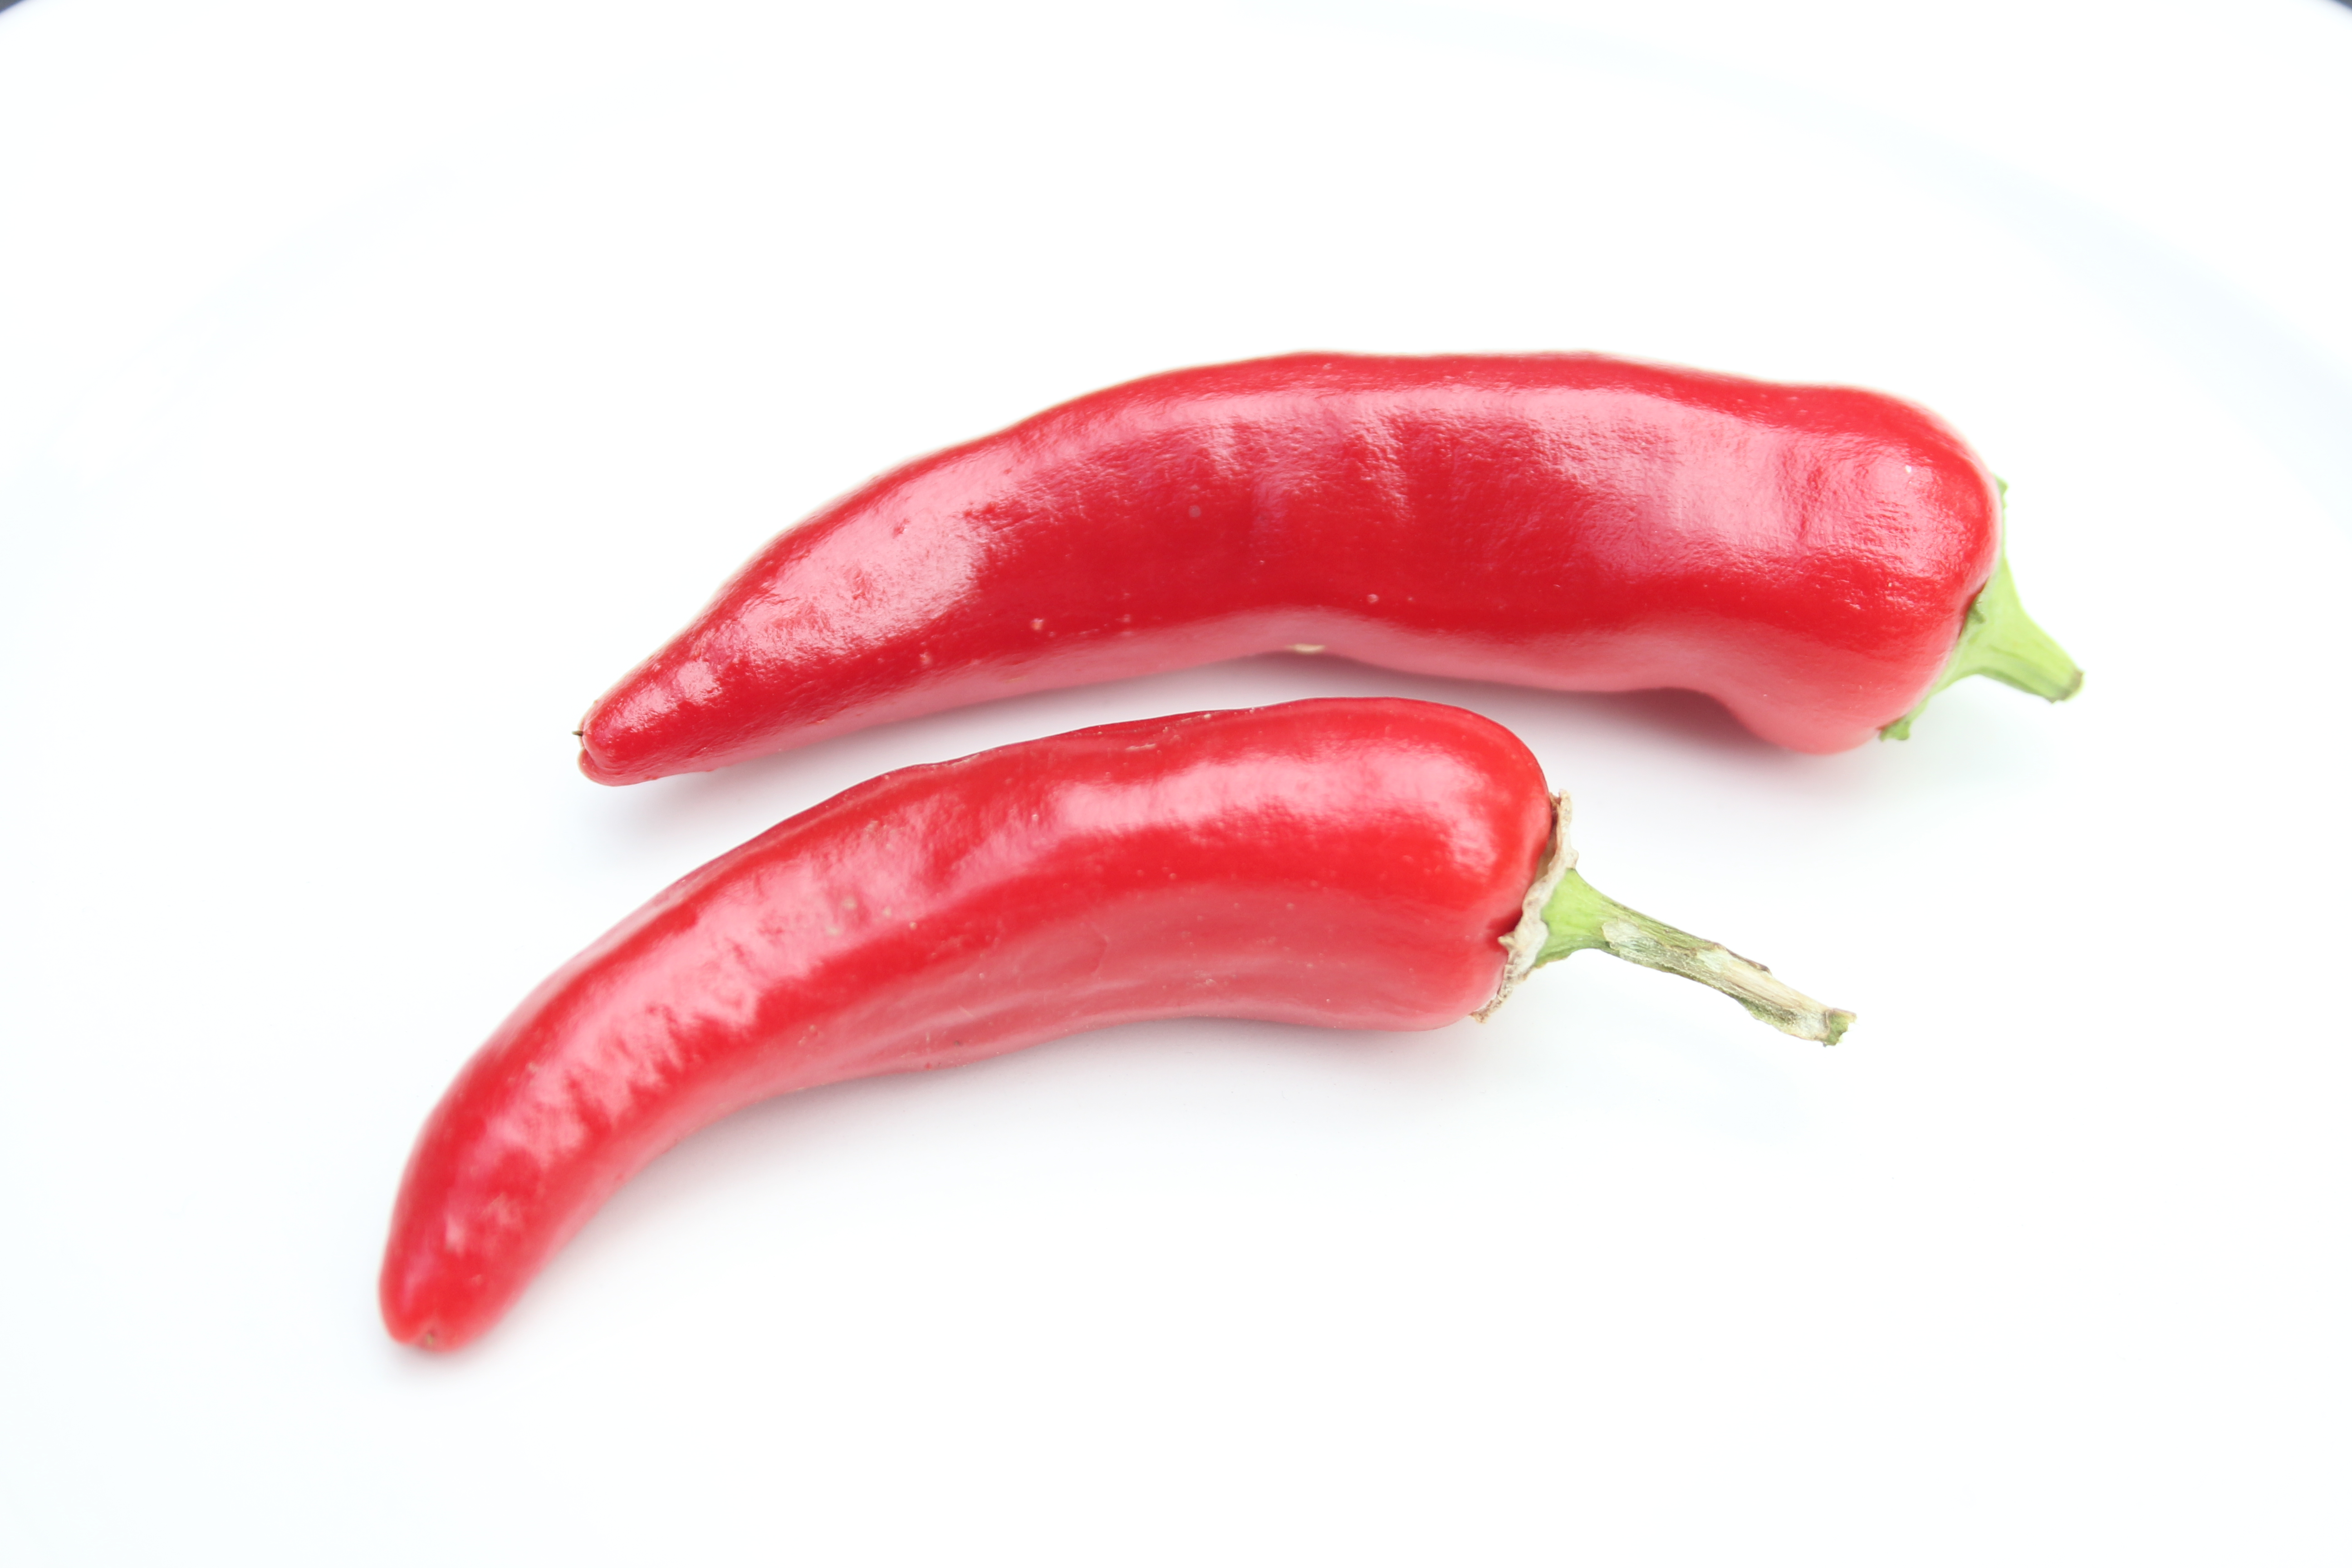 chili peppers reduce risk of death from any cause and from cardiovascular disease